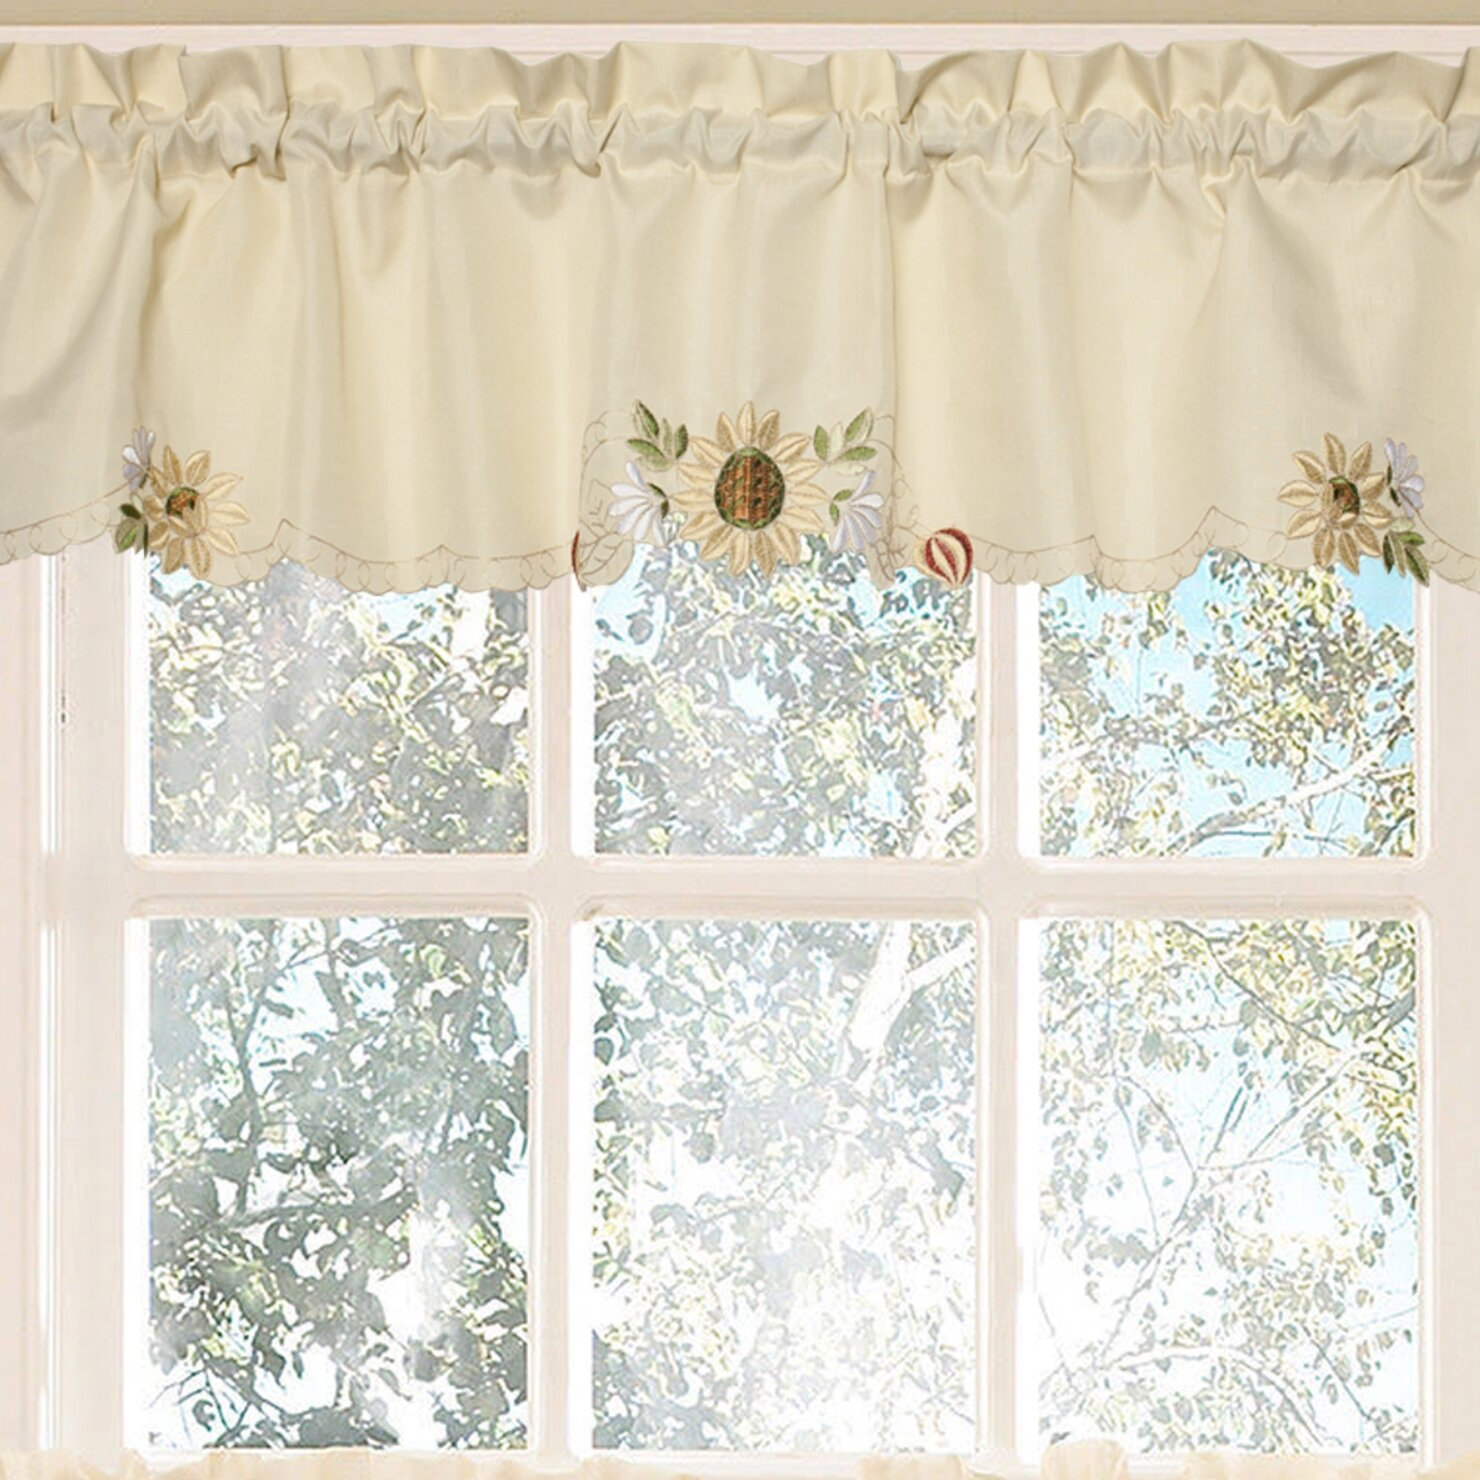 Sweet Home Collection Sunflower Embroidered Kitchen 60 Curtain Valance Reviews Wayfair